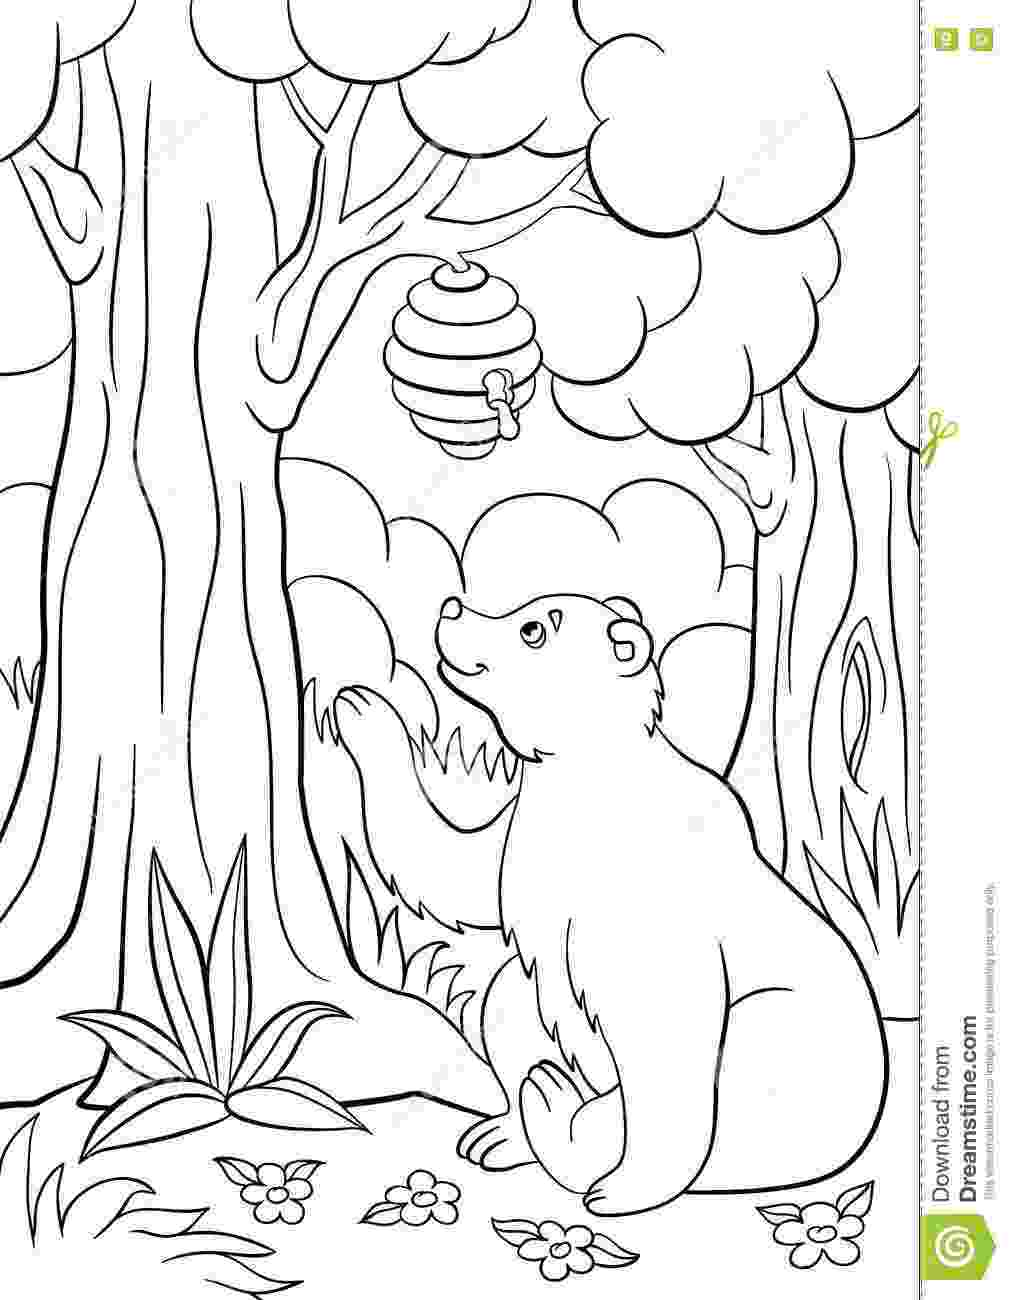 cute wild animals colouring pages 17 best images about coloringanimals1 on pinterest animals wild cute colouring pages